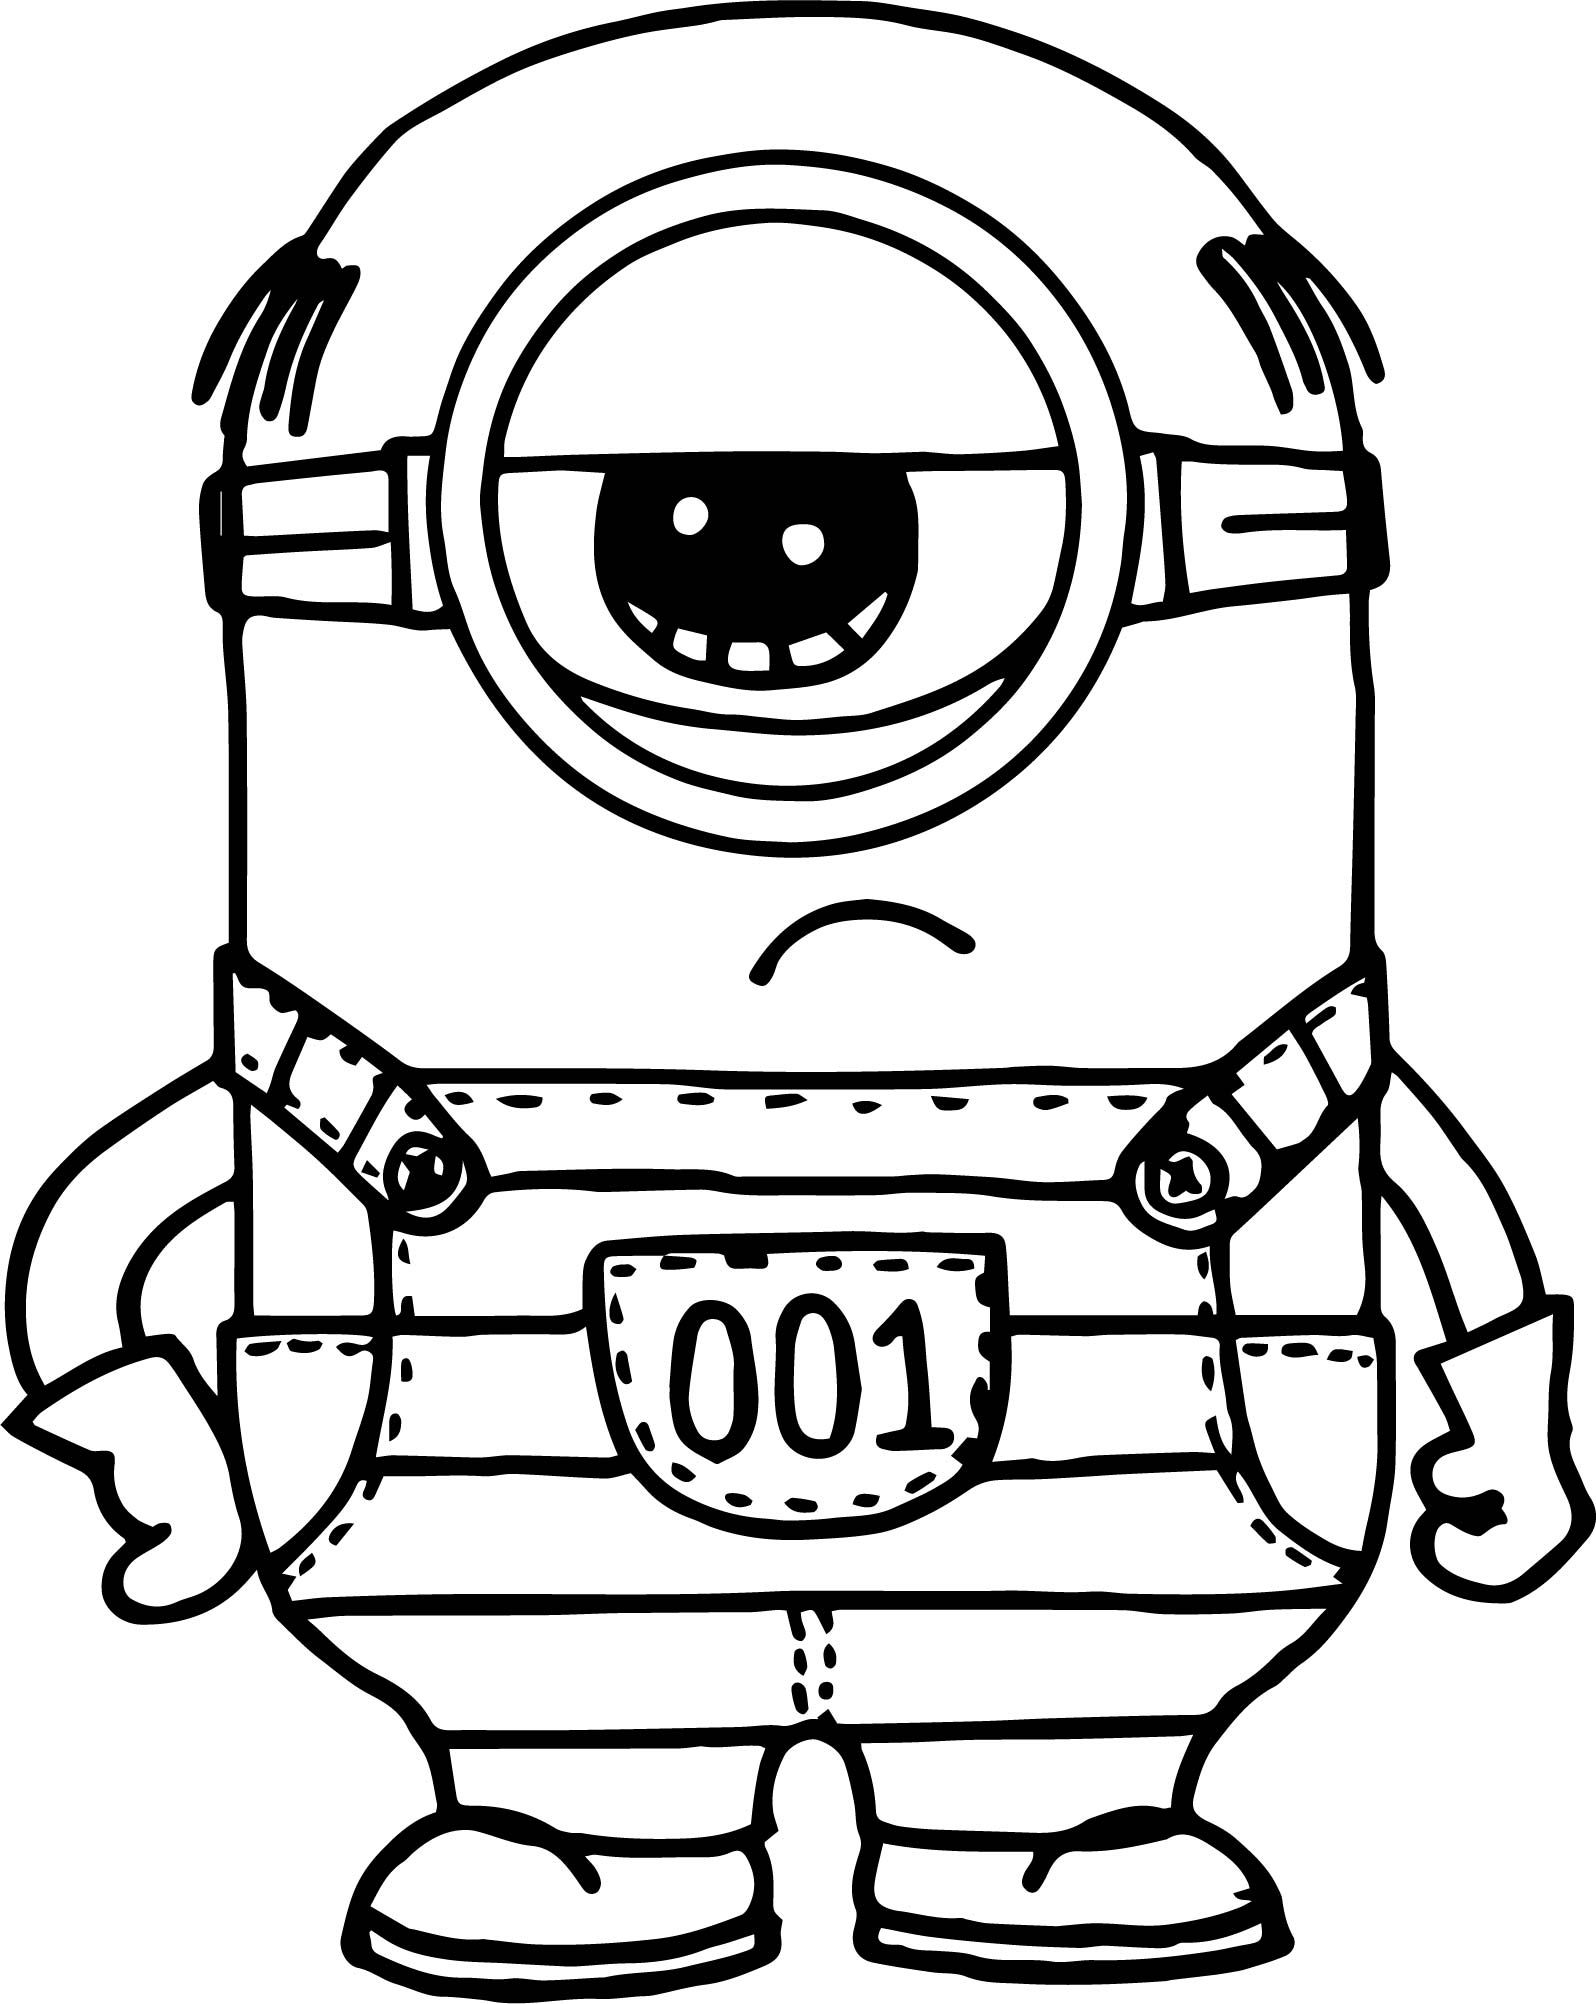 free printable minion pictures free printable coloring pages minions at getcoloringscom pictures free printable minion